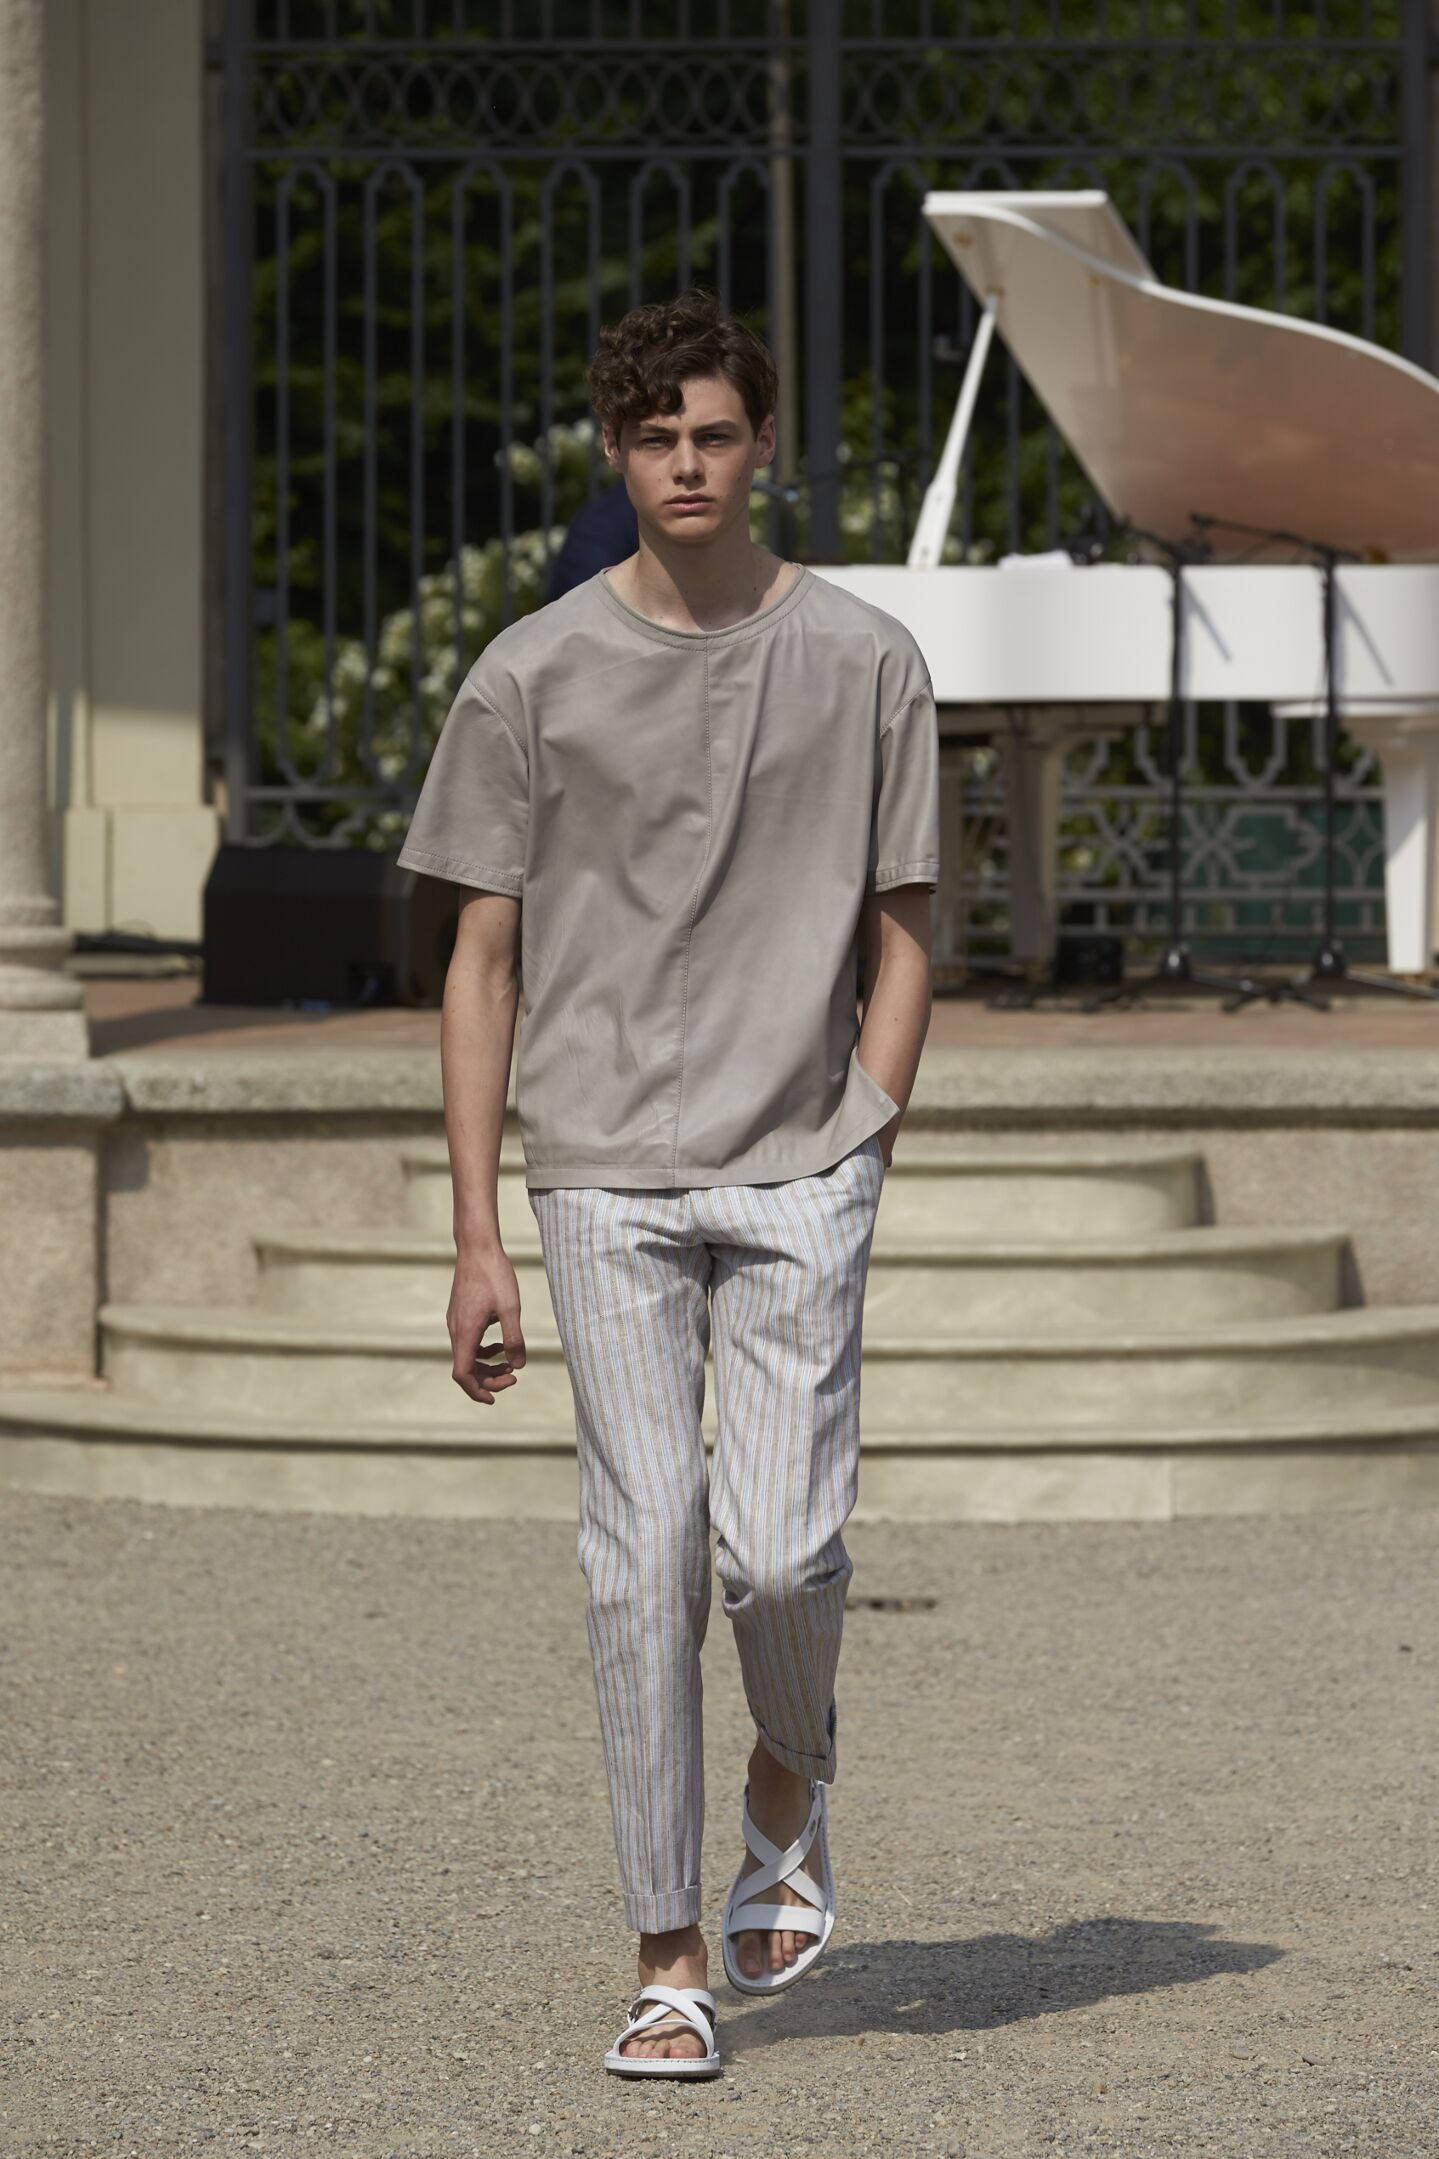 Catwalk Corneliani Man Fashion Show Summer 2015